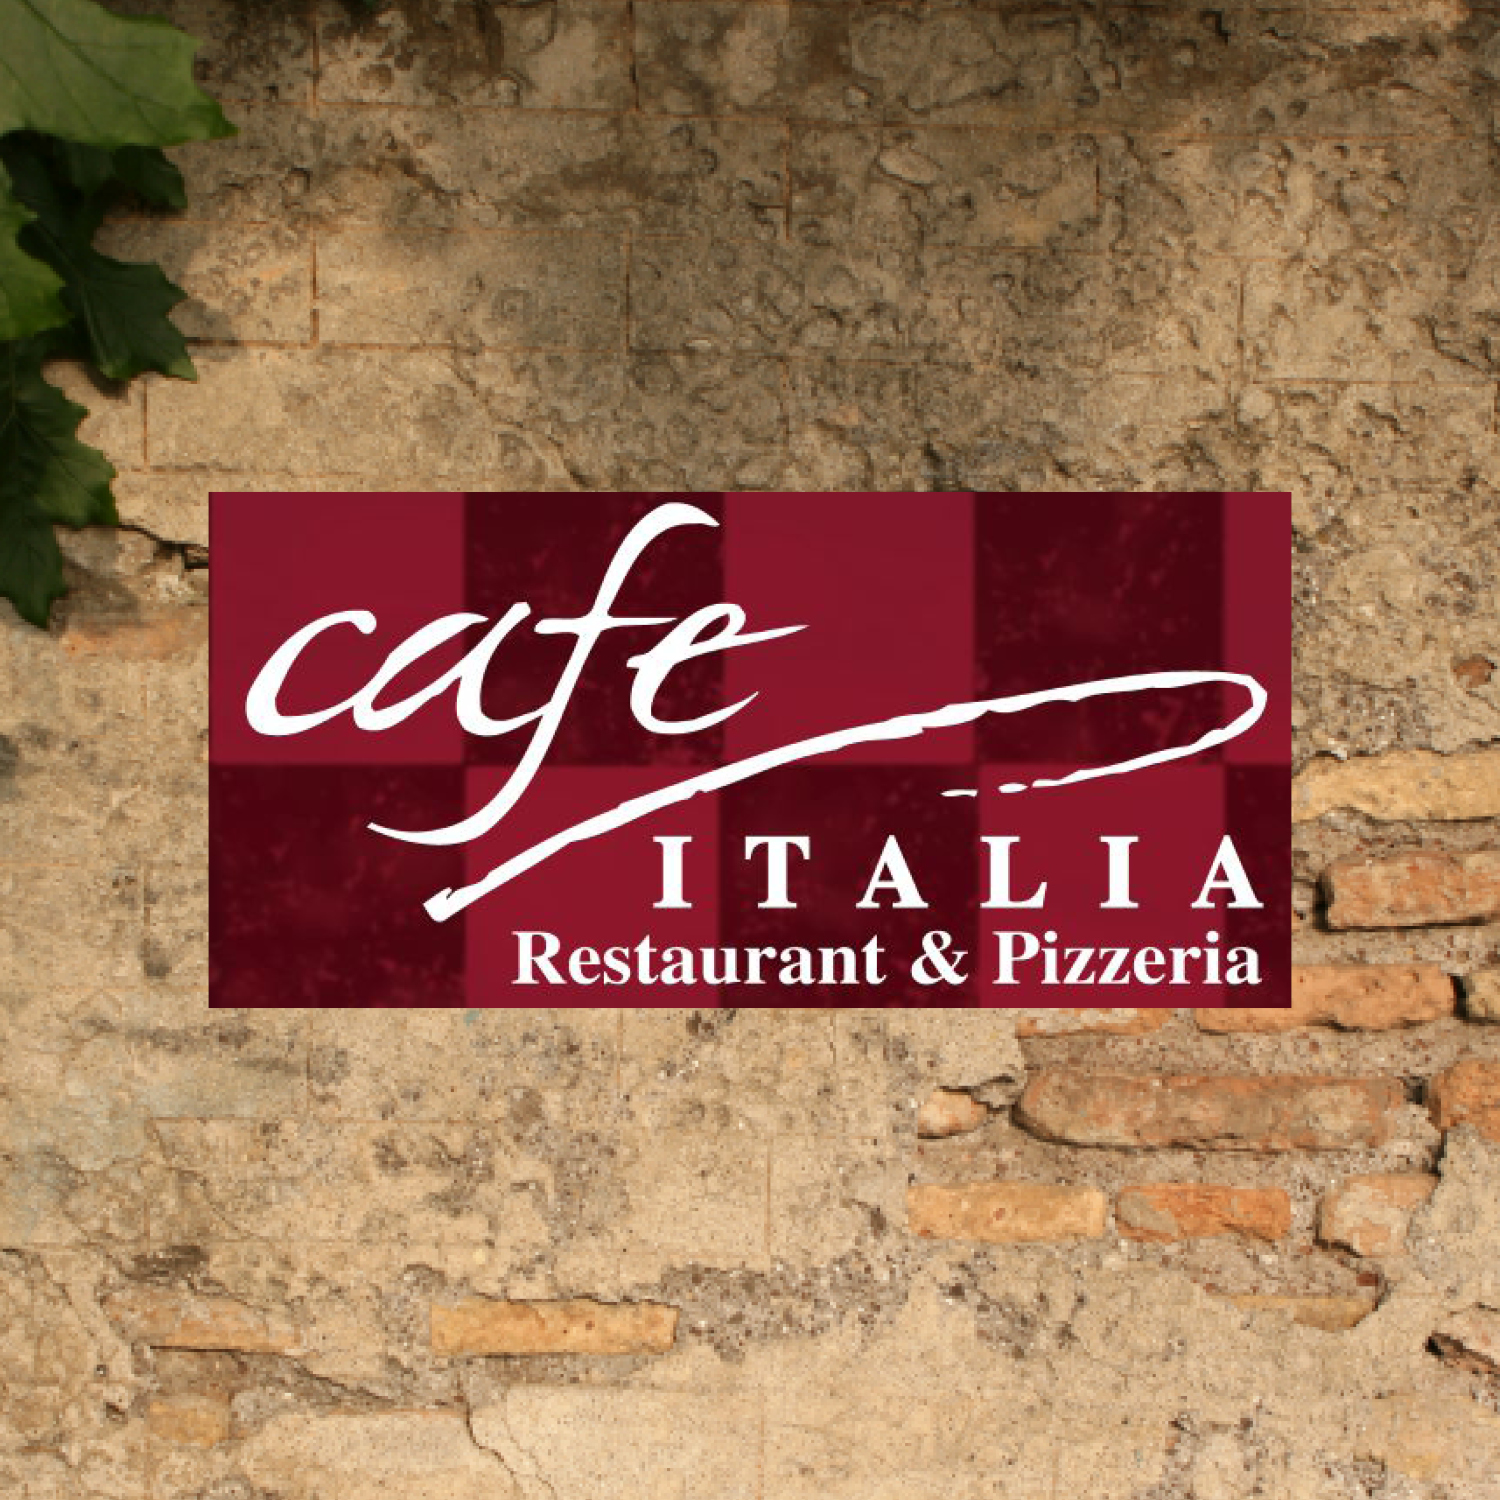 Café Italia Restaurant & Pizzeria! We've been providing the area with delicious Italian dishes for over 10 years. You may eat in our fabulous dining area, or carry out.       -Click image to view current offers-    .